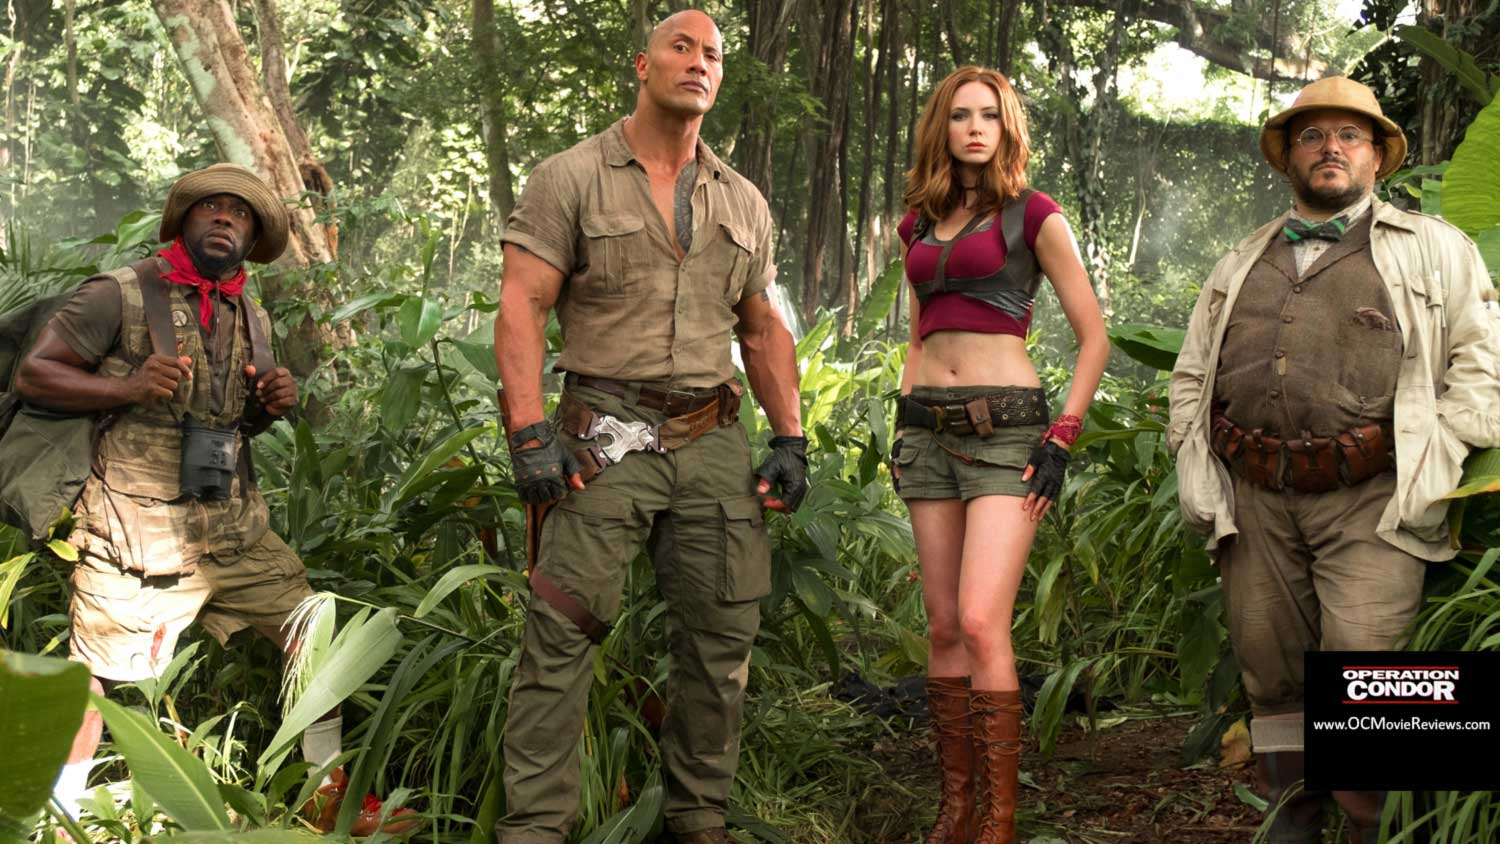 Jumanji: Welcome To The Jungle Review - OC Movie Reviews - Movie Reviews, Movie News, Documentary Reviews, Short Films, Short Film Reviews, Trailers, Movie Trailers, Interviews, film reviews, film news, hollywood, indie films, documentaries